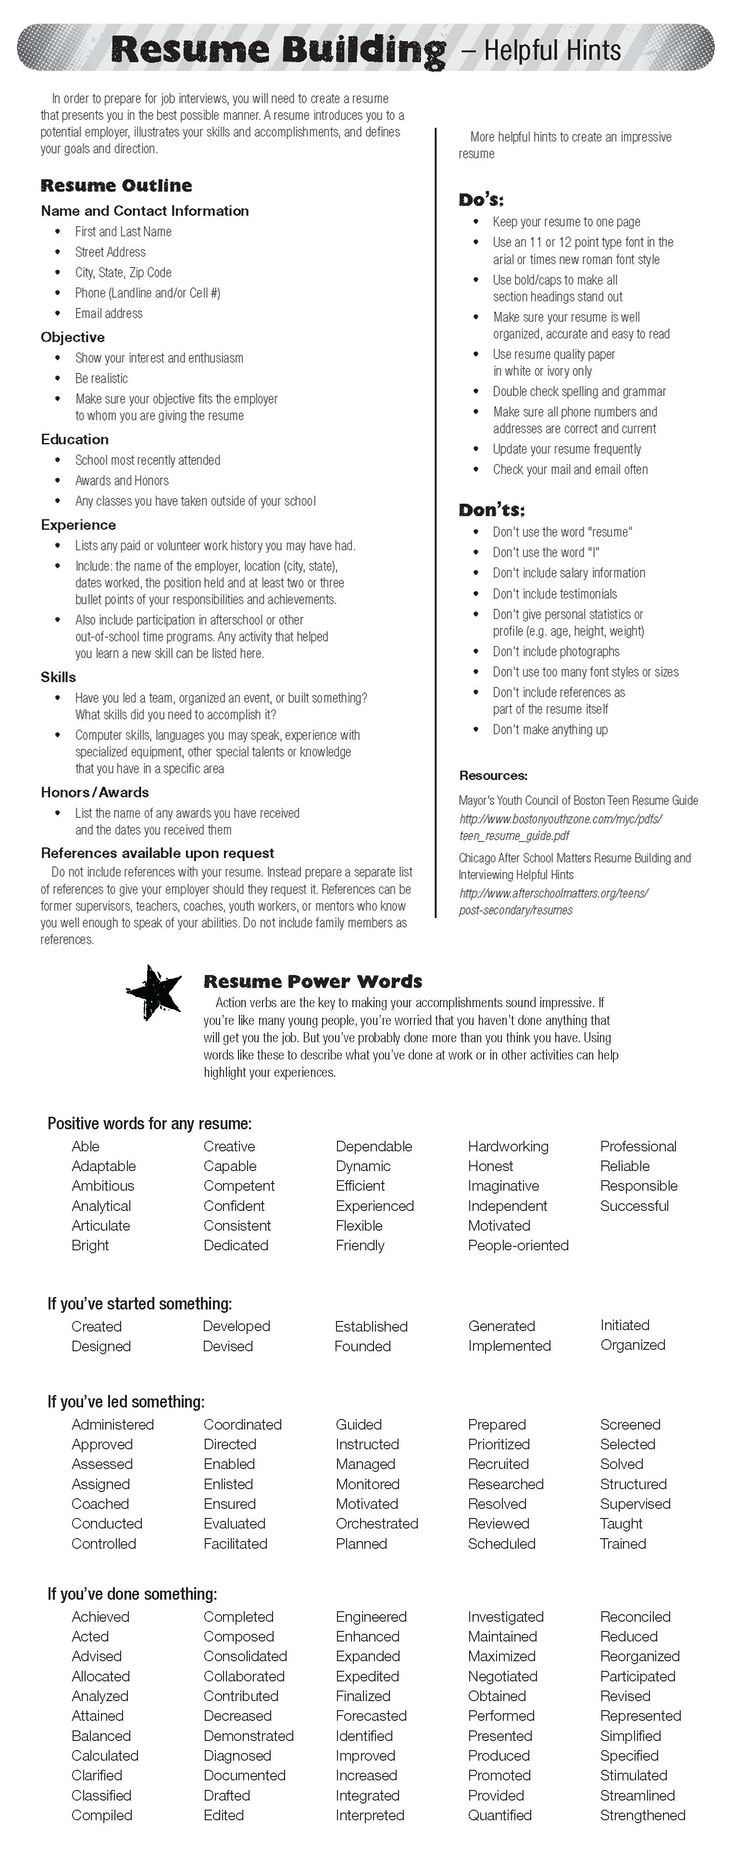 Opposenewapstandardsus  Terrific  Ideas About Resume On Pinterest  Cv Format Resume Cv And  With Heavenly  Ideas About Resume On Pinterest  Cv Format Resume Cv And Resume Templates With Amusing Dictionary Resume Also Good Customer Service Resume In Addition Good Words For A Resume And Resume Summa Cum Laude As Well As Real Estate Administrative Assistant Resume Additionally Resume Design Ideas From Pinterestcom With Opposenewapstandardsus  Heavenly  Ideas About Resume On Pinterest  Cv Format Resume Cv And  With Amusing  Ideas About Resume On Pinterest  Cv Format Resume Cv And Resume Templates And Terrific Dictionary Resume Also Good Customer Service Resume In Addition Good Words For A Resume From Pinterestcom